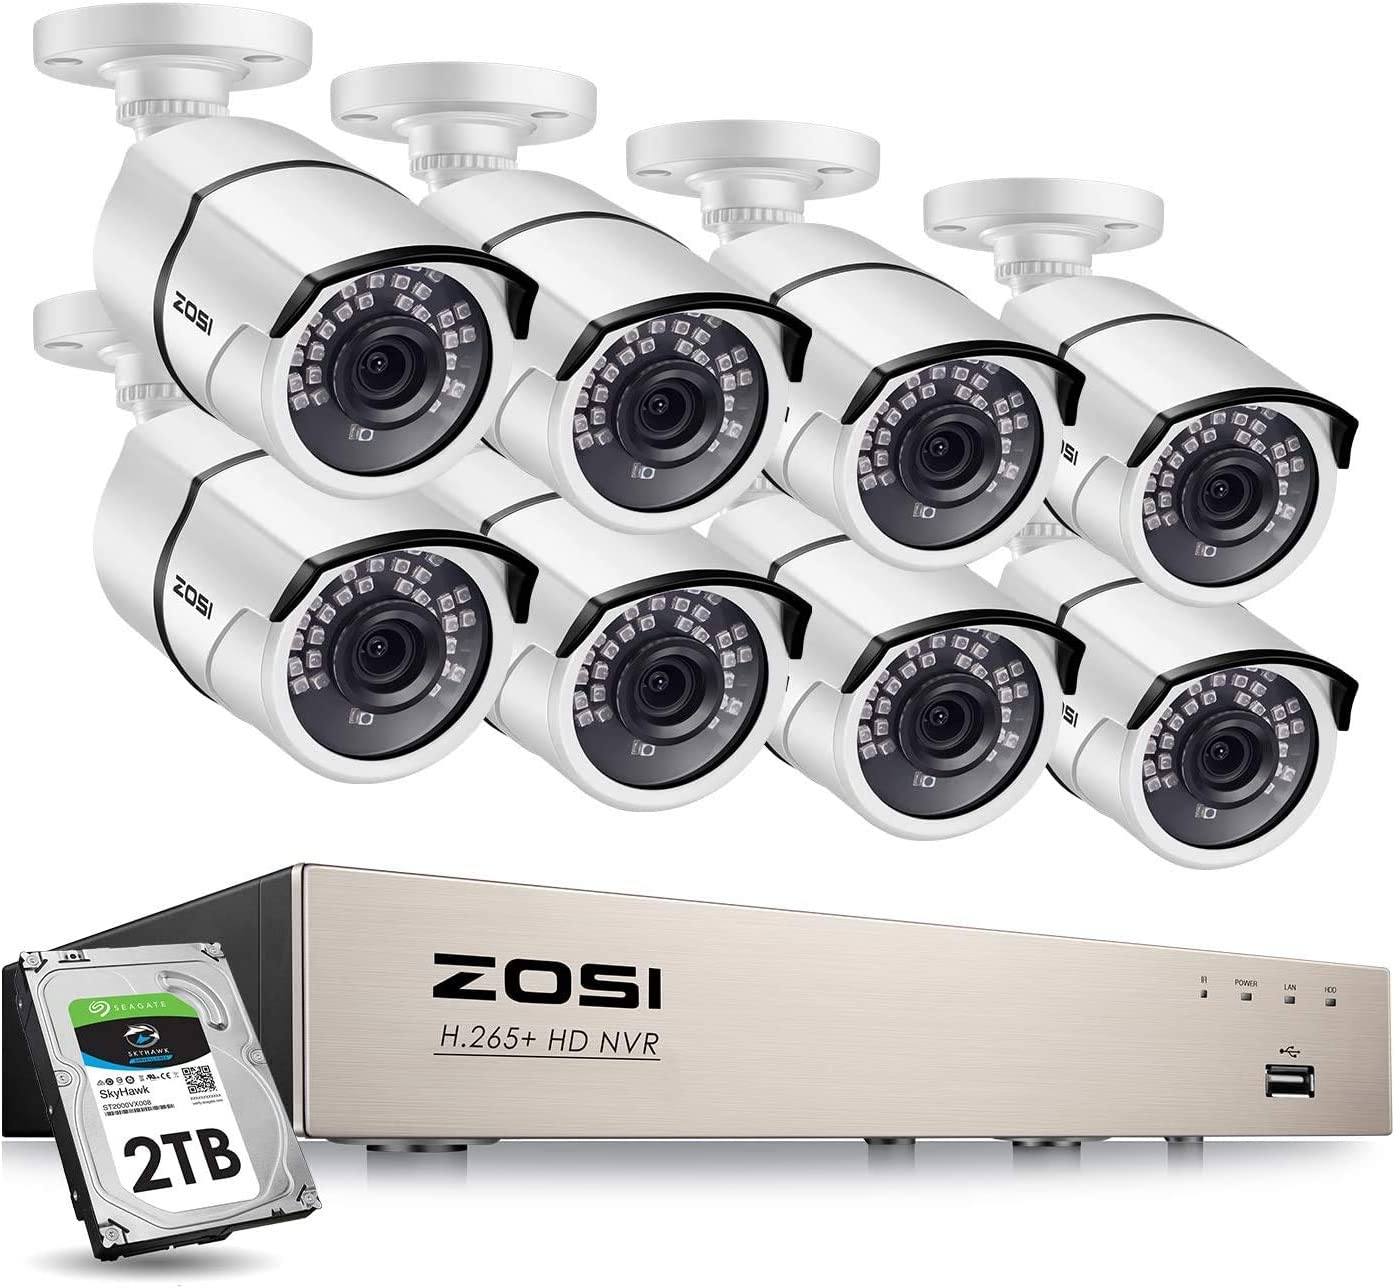 ZOSI Full HD 1080P PoE Video Security Cameras System,8CH 1080P Surveillance NVR, 8×2.0 MP Weatherproof IP Cameras, 120ft Night Vision with 2TB Hard Drive, Power Over Ethernet Renewed